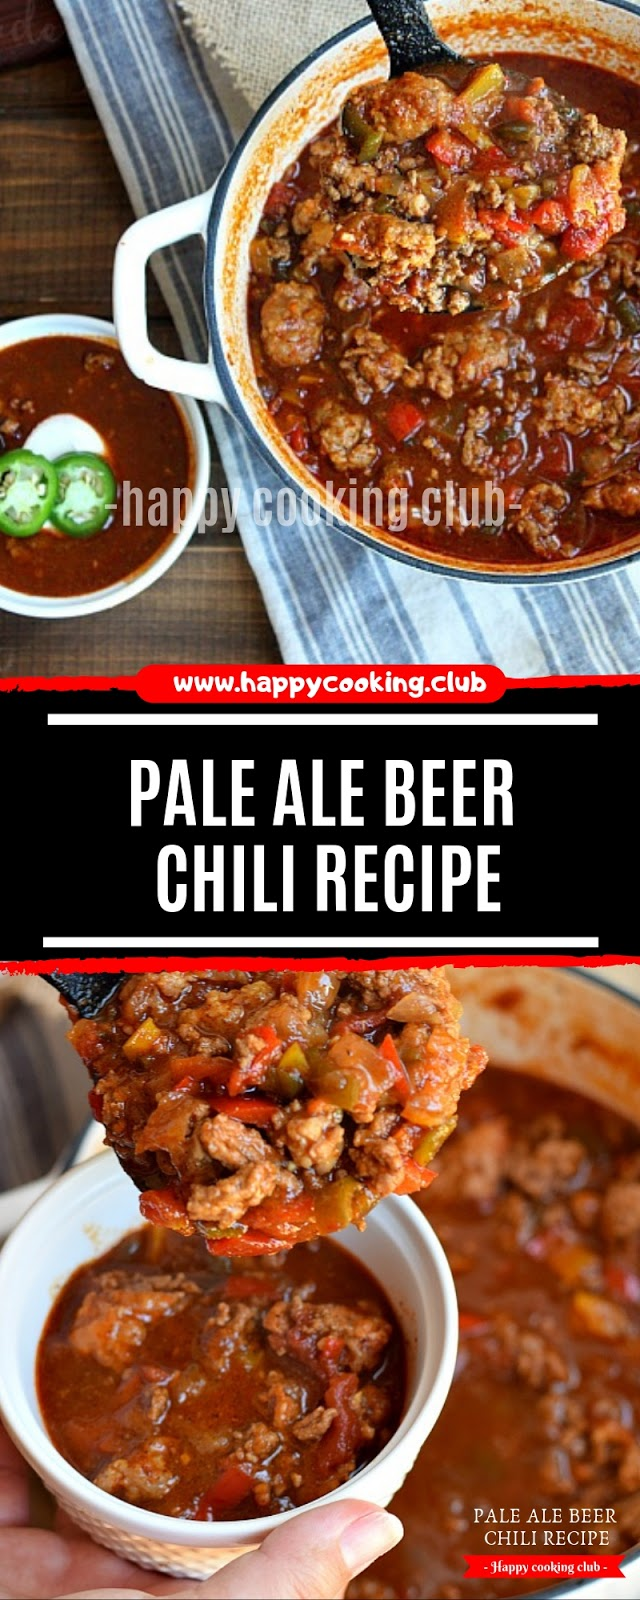 Pale Ale Beer Chili Recipe